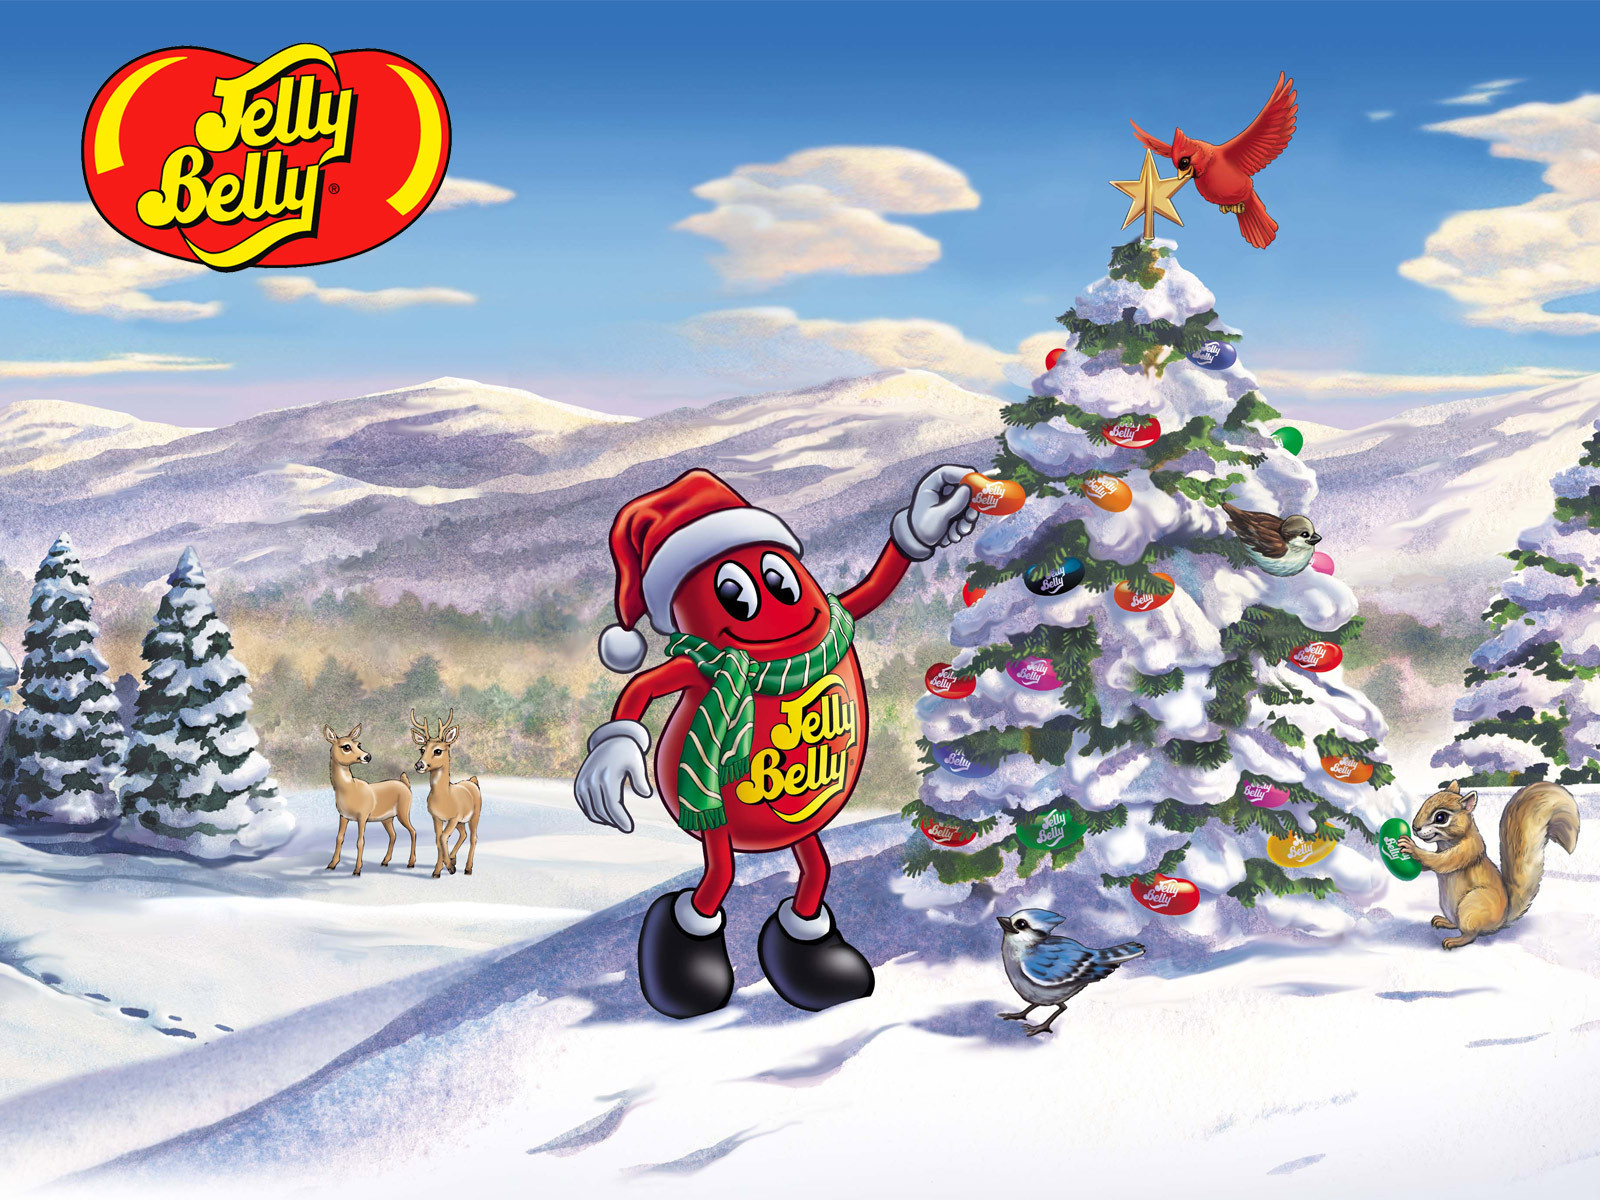 jelly belly images jelly belly winter wallpaper hd